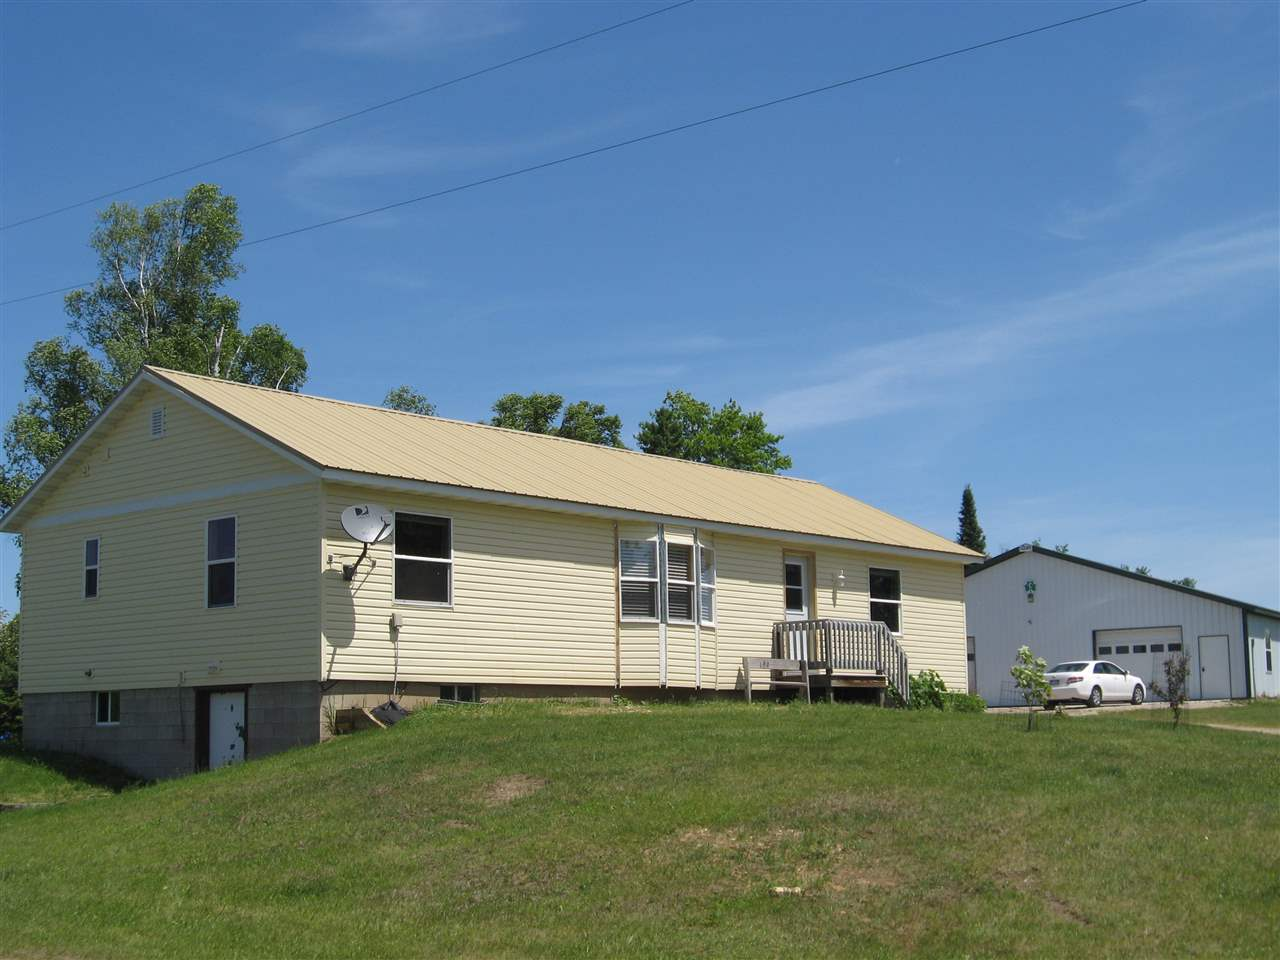 Mls 1095514 37624 co rd 426 cornell mi 49818 for Upper michigan real estate zillow